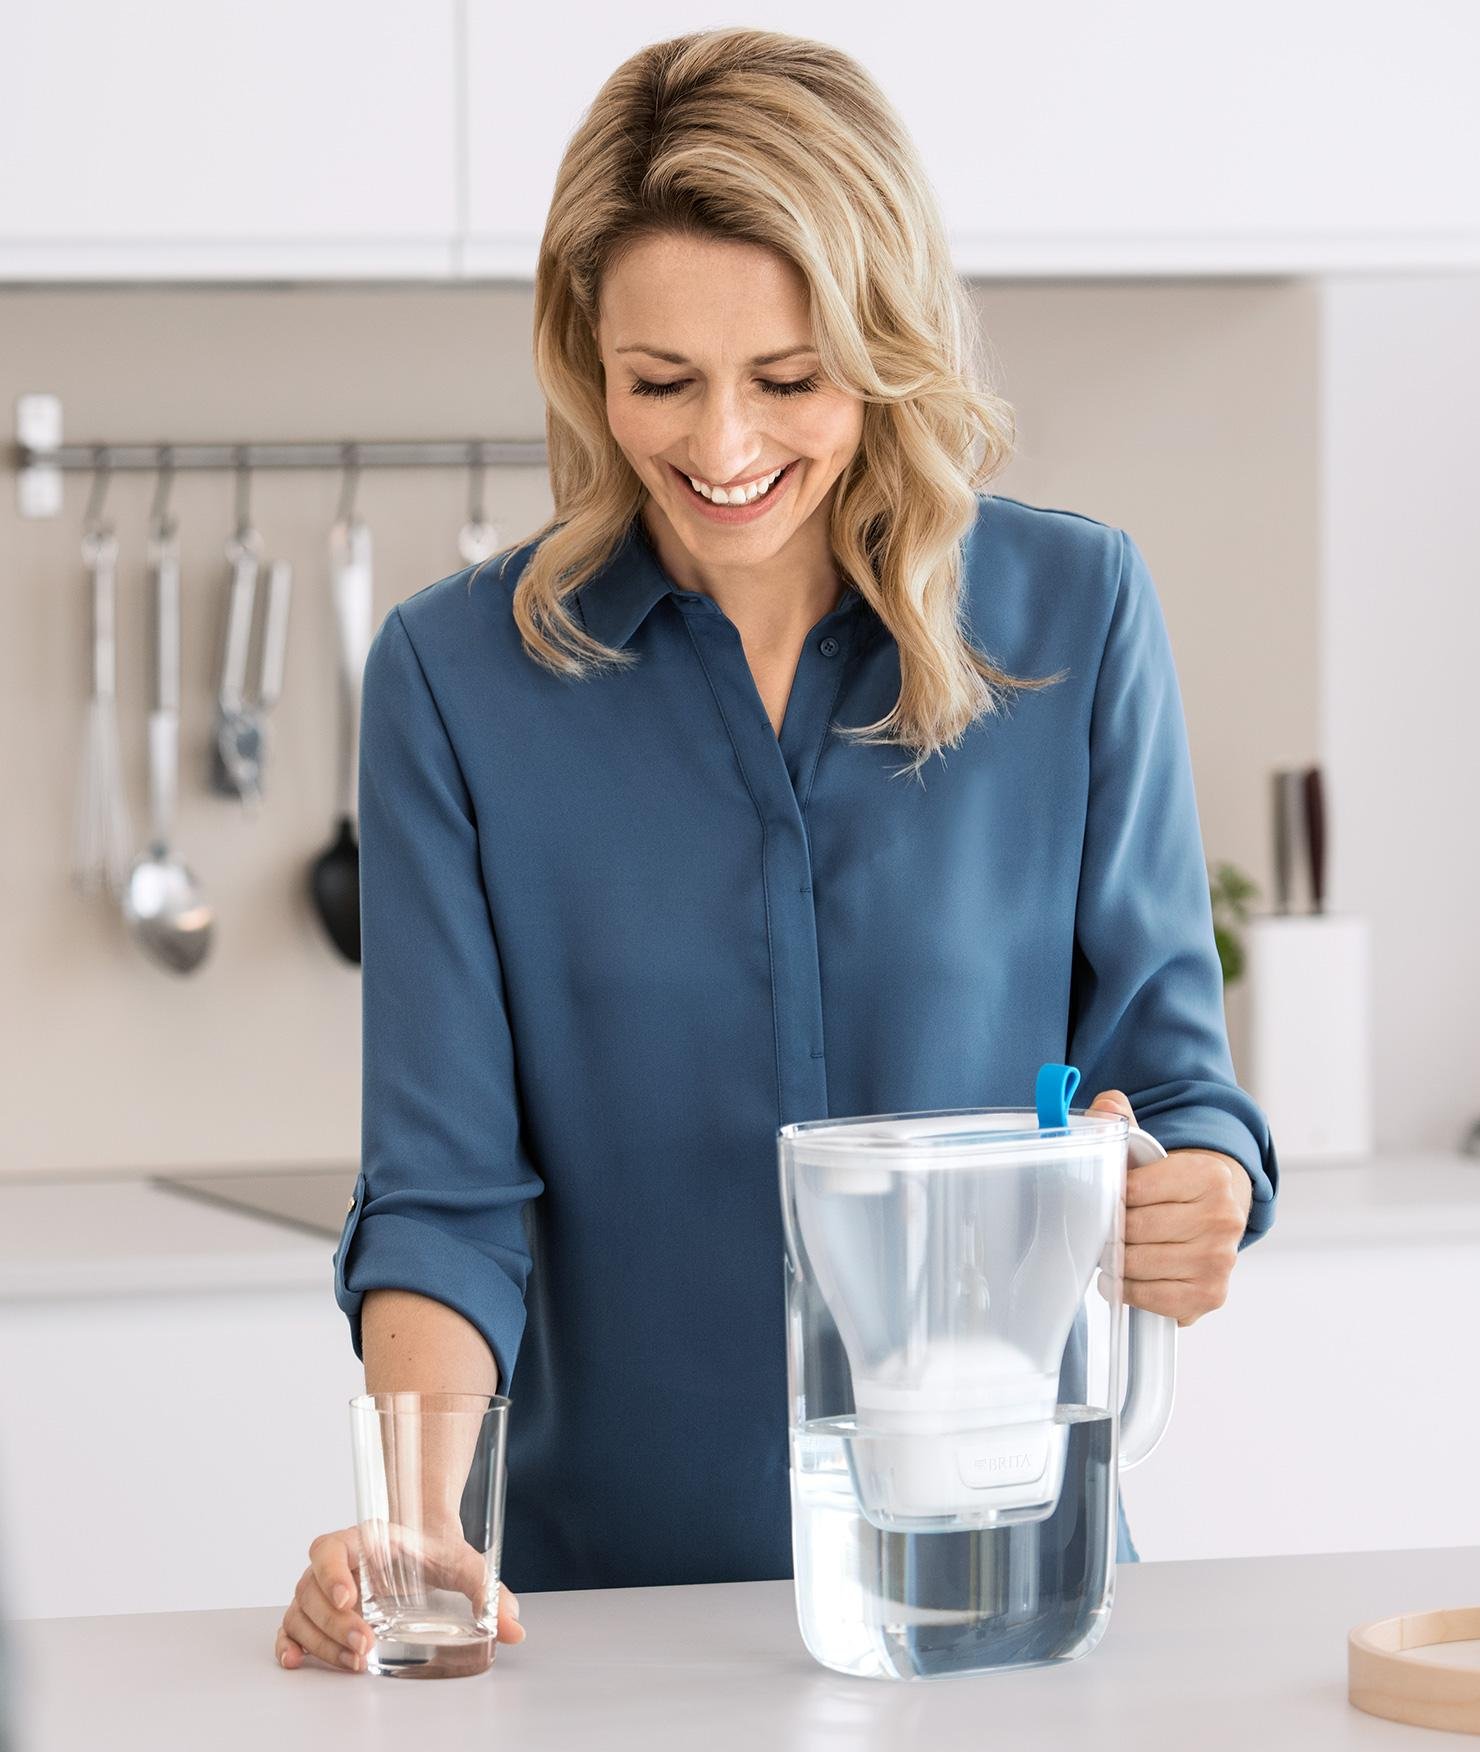 BRITA fill&enjoy Style couple kitchen standing